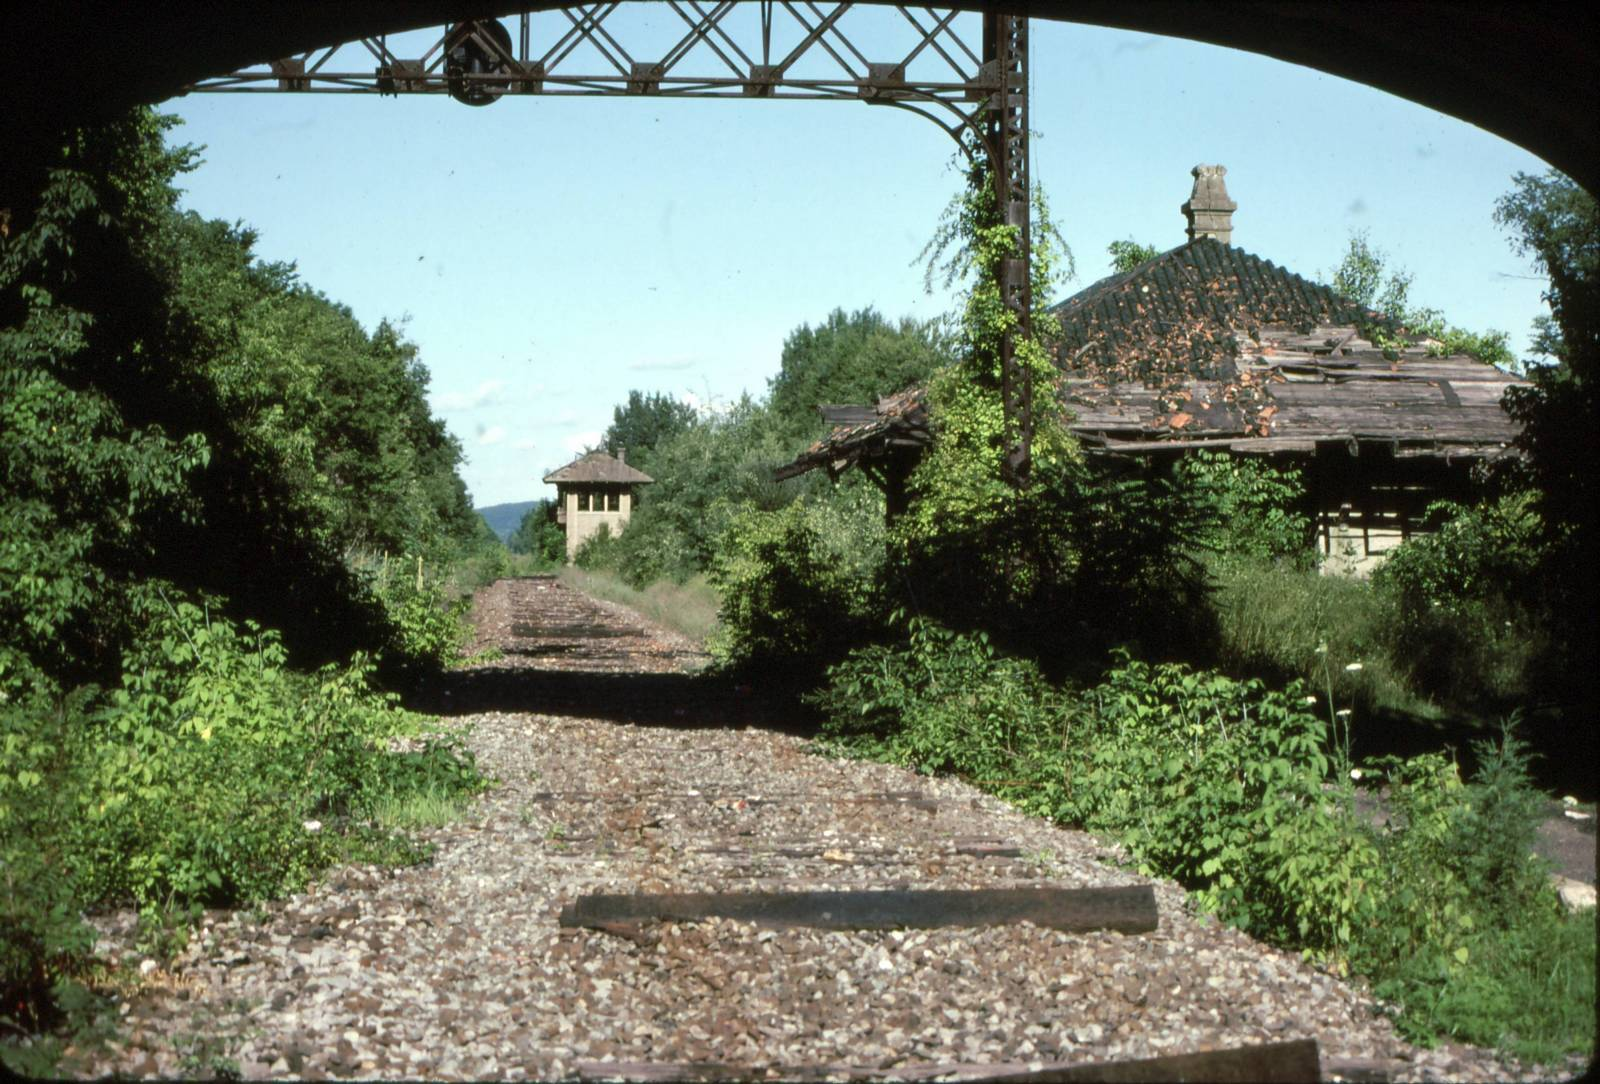 greendell-station-1988.jpg